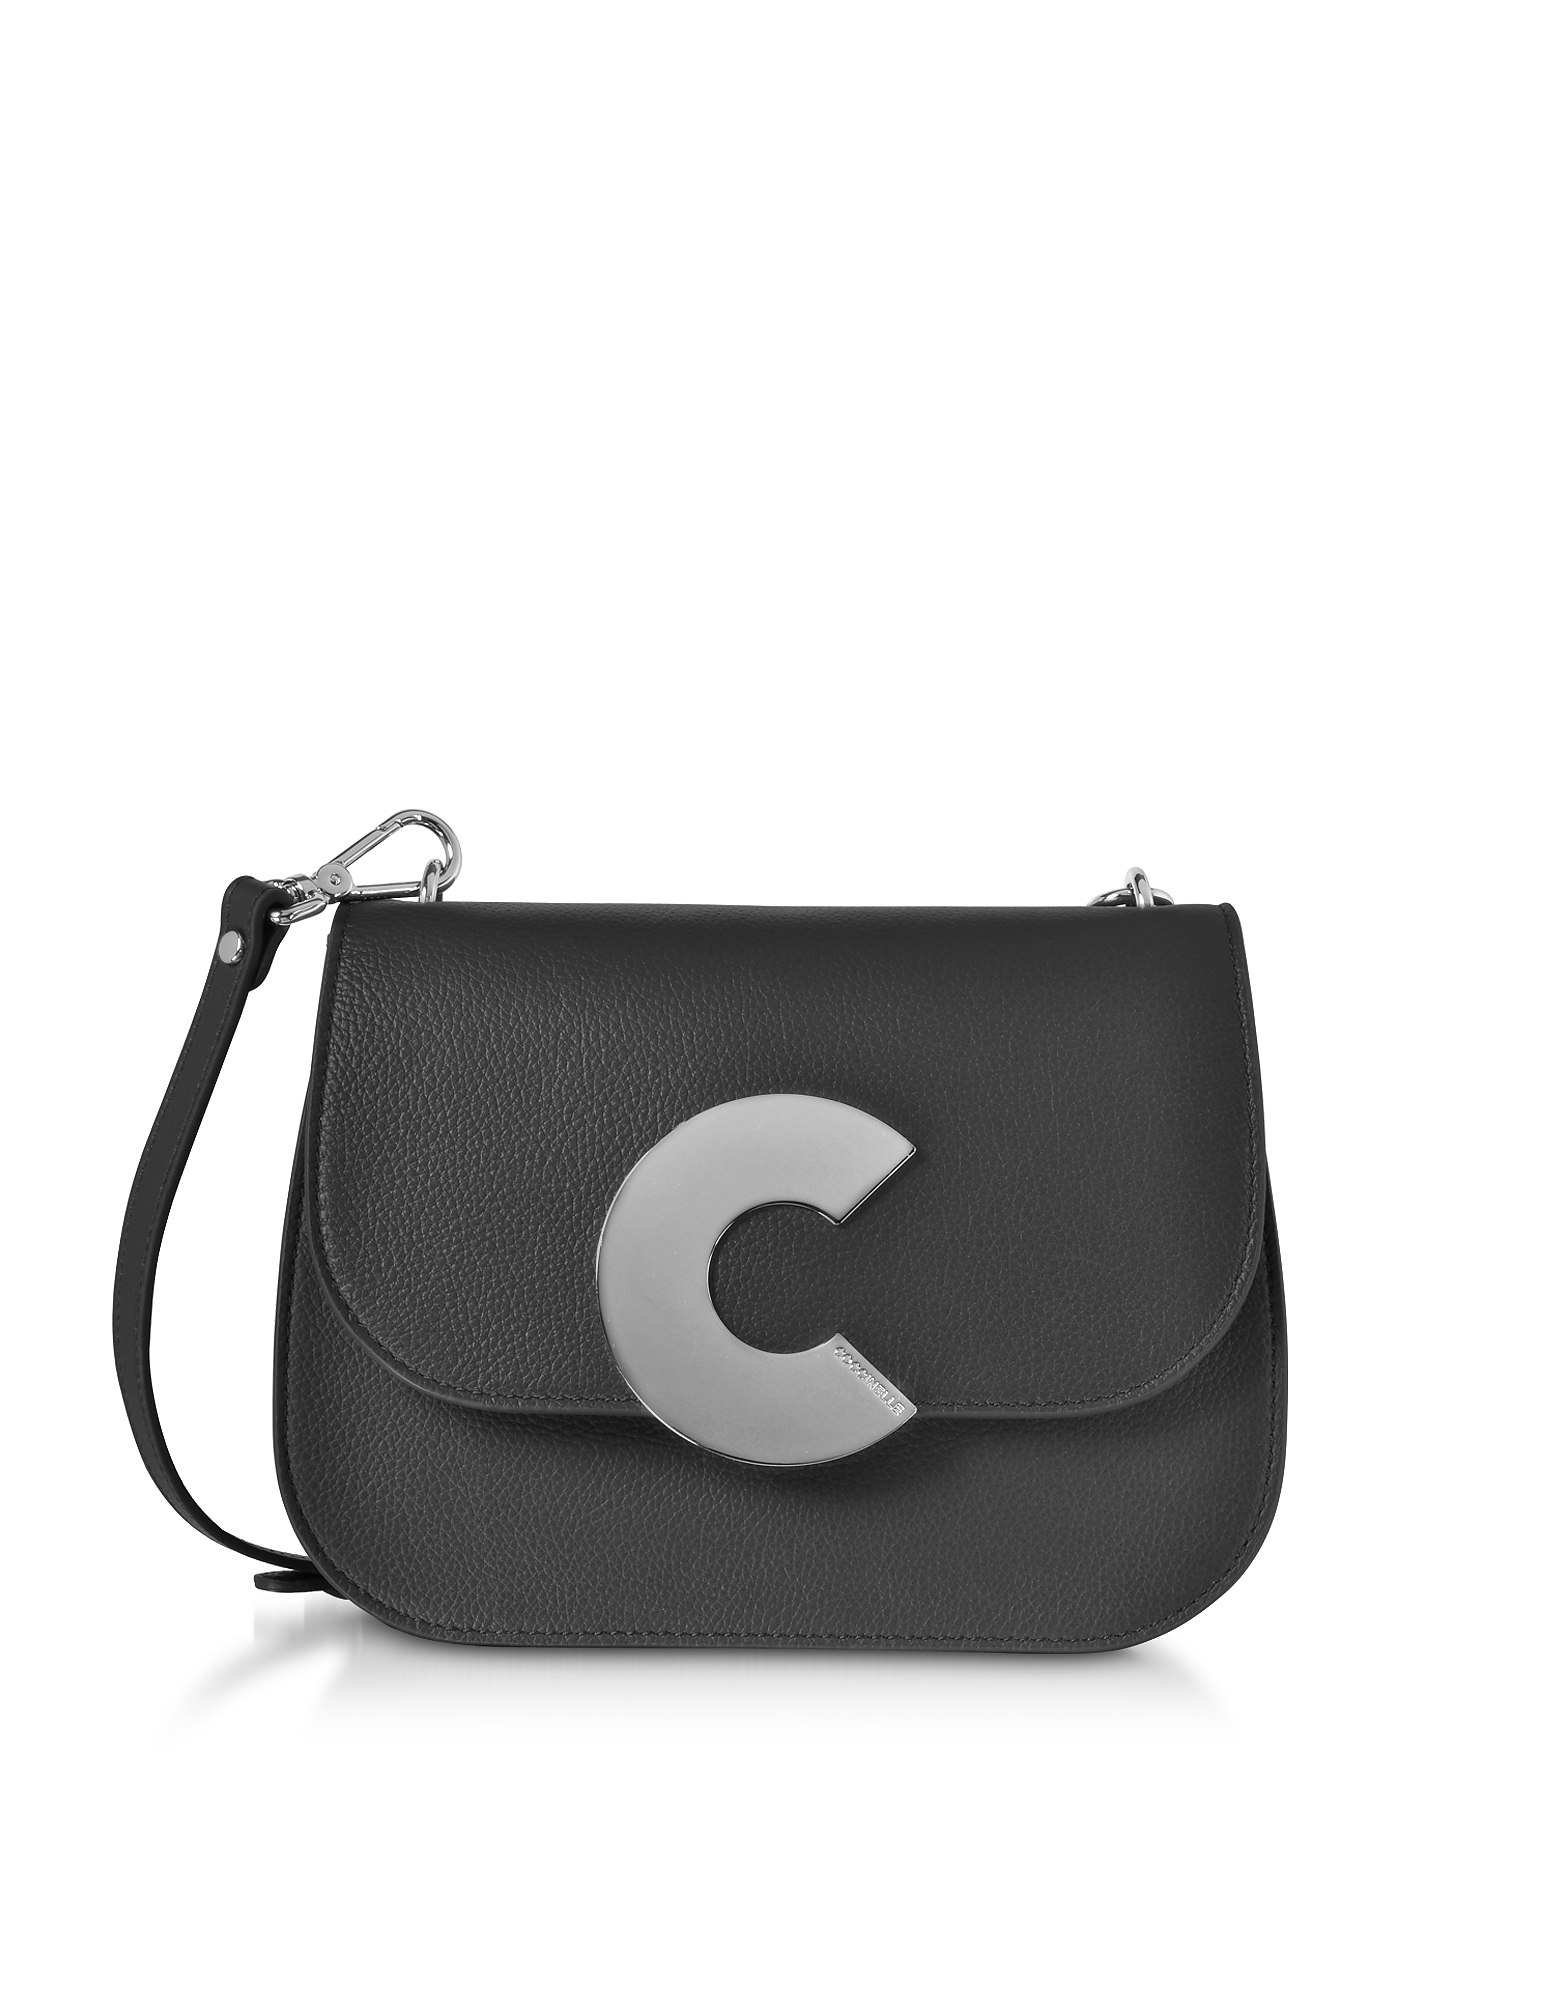 Coccinelle Craquante Grained Leather Medium Crossbody Bag  645aff72436a3